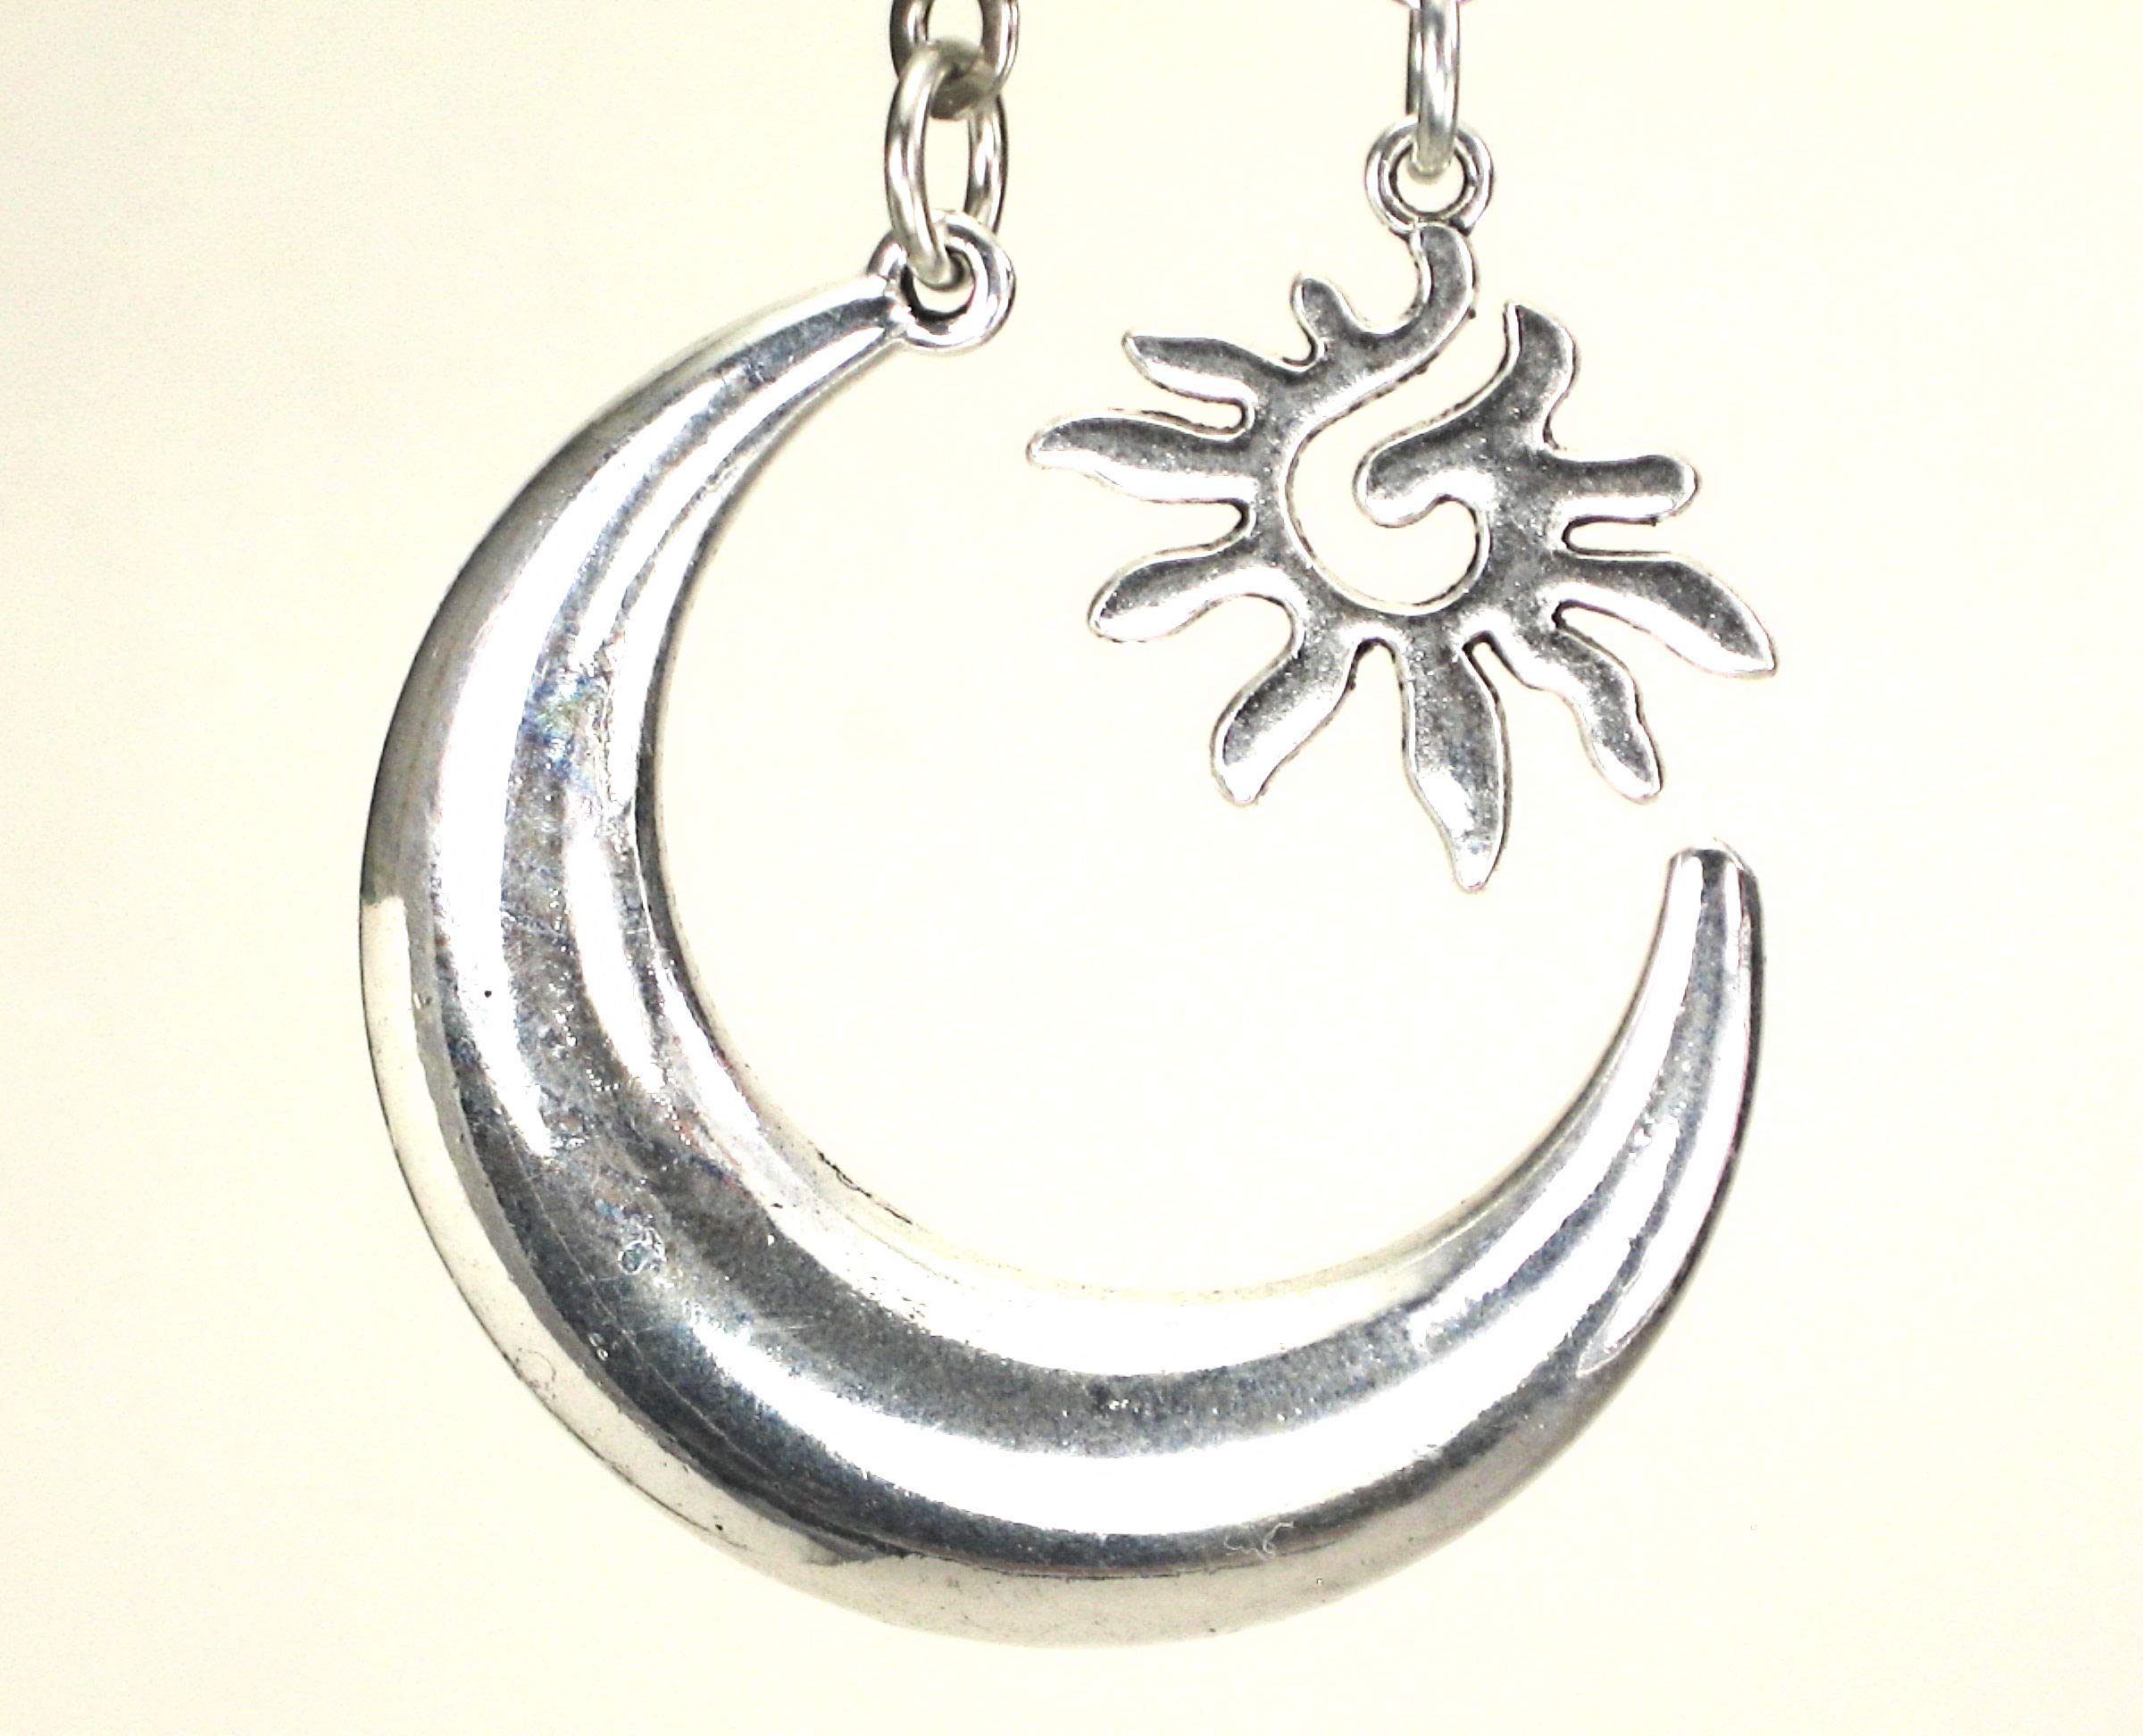 2-Piece Silver Moroccan Moon and Sun Ceiling Fan Pulls Set